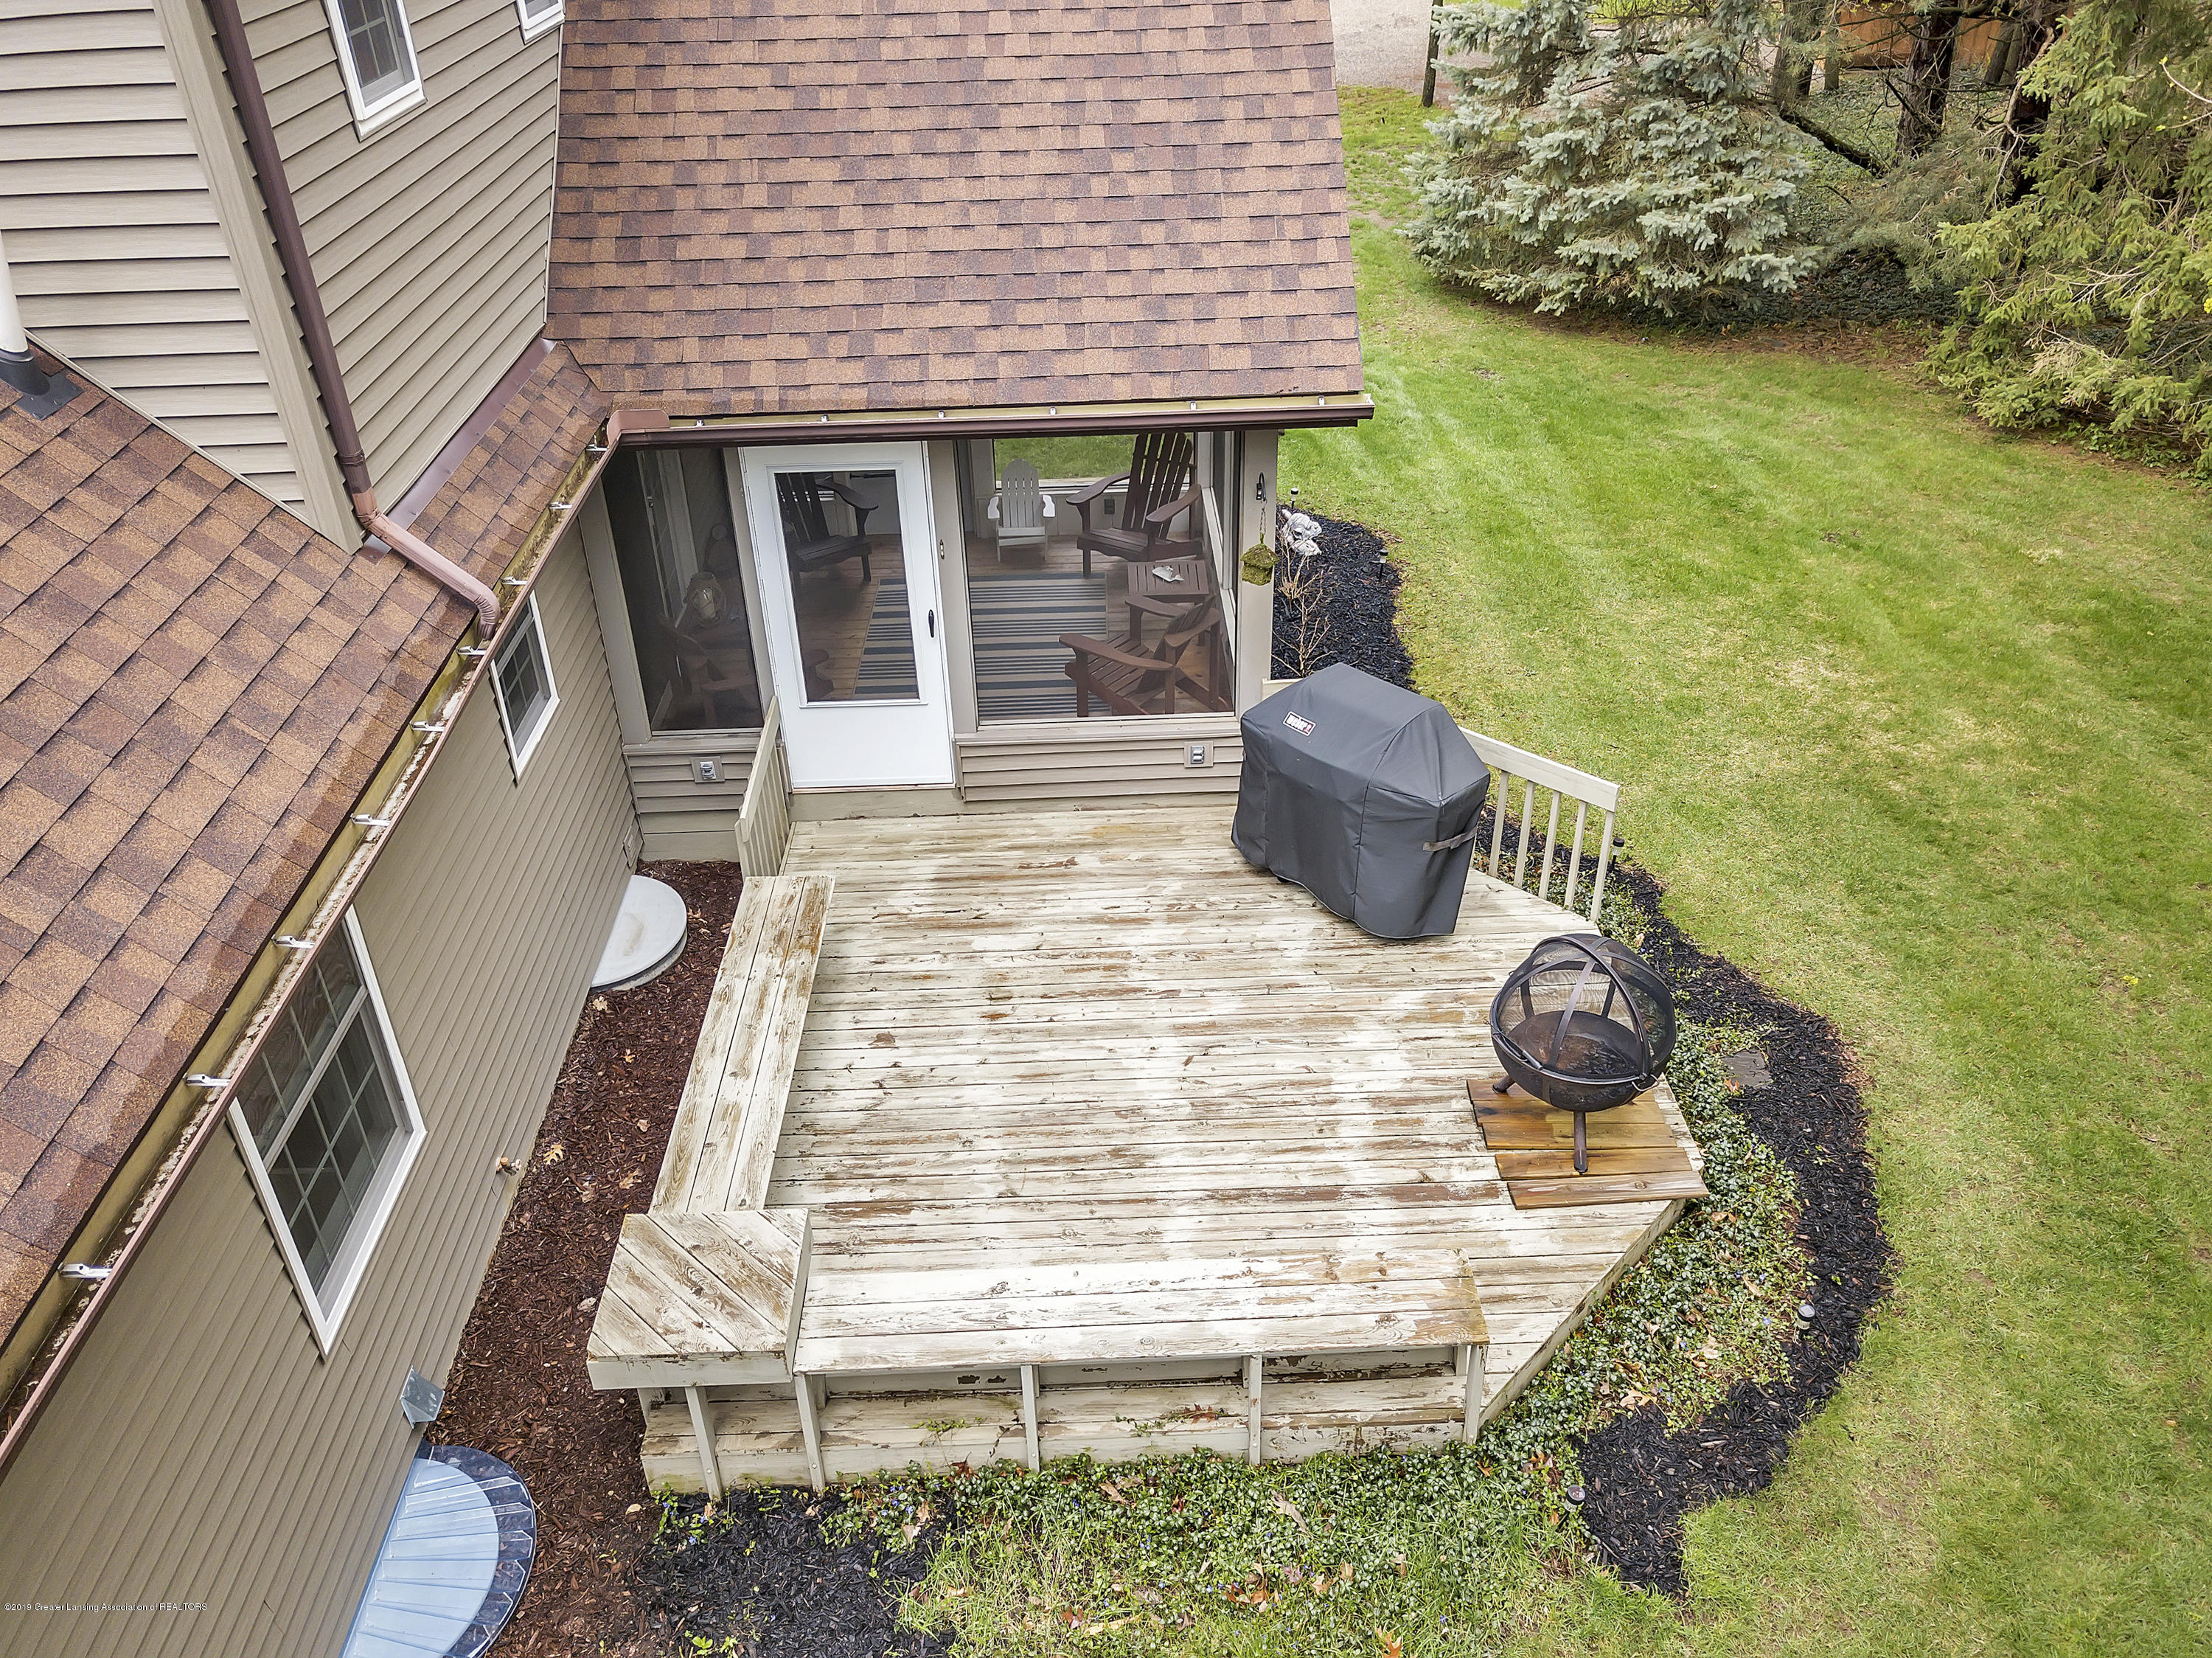 5075 Lake Dr - 5075-Lake-Dr-Owosso-windowstill-48 - 46